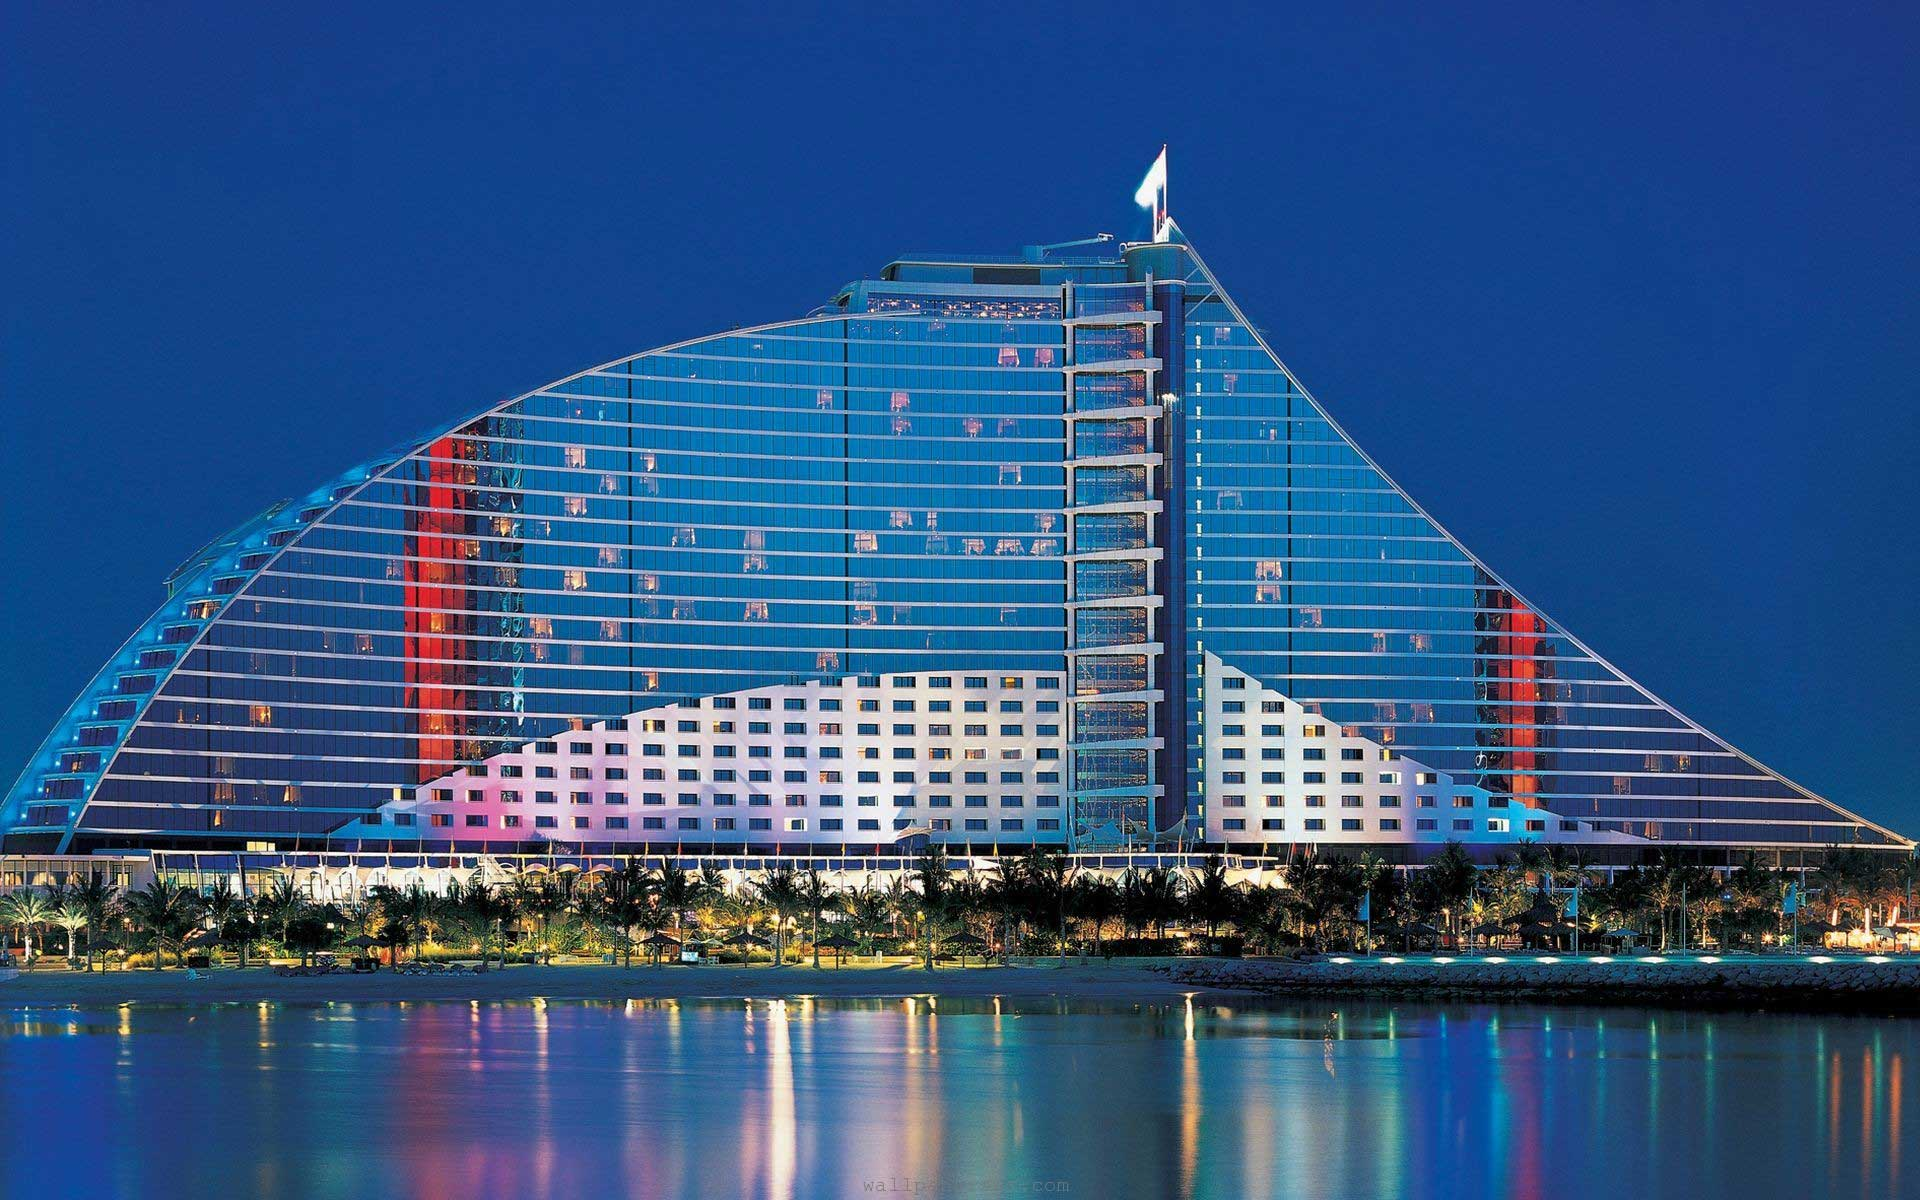 Meydan race season 2014 hotel deal with the ritz carlton for Best suites in dubai